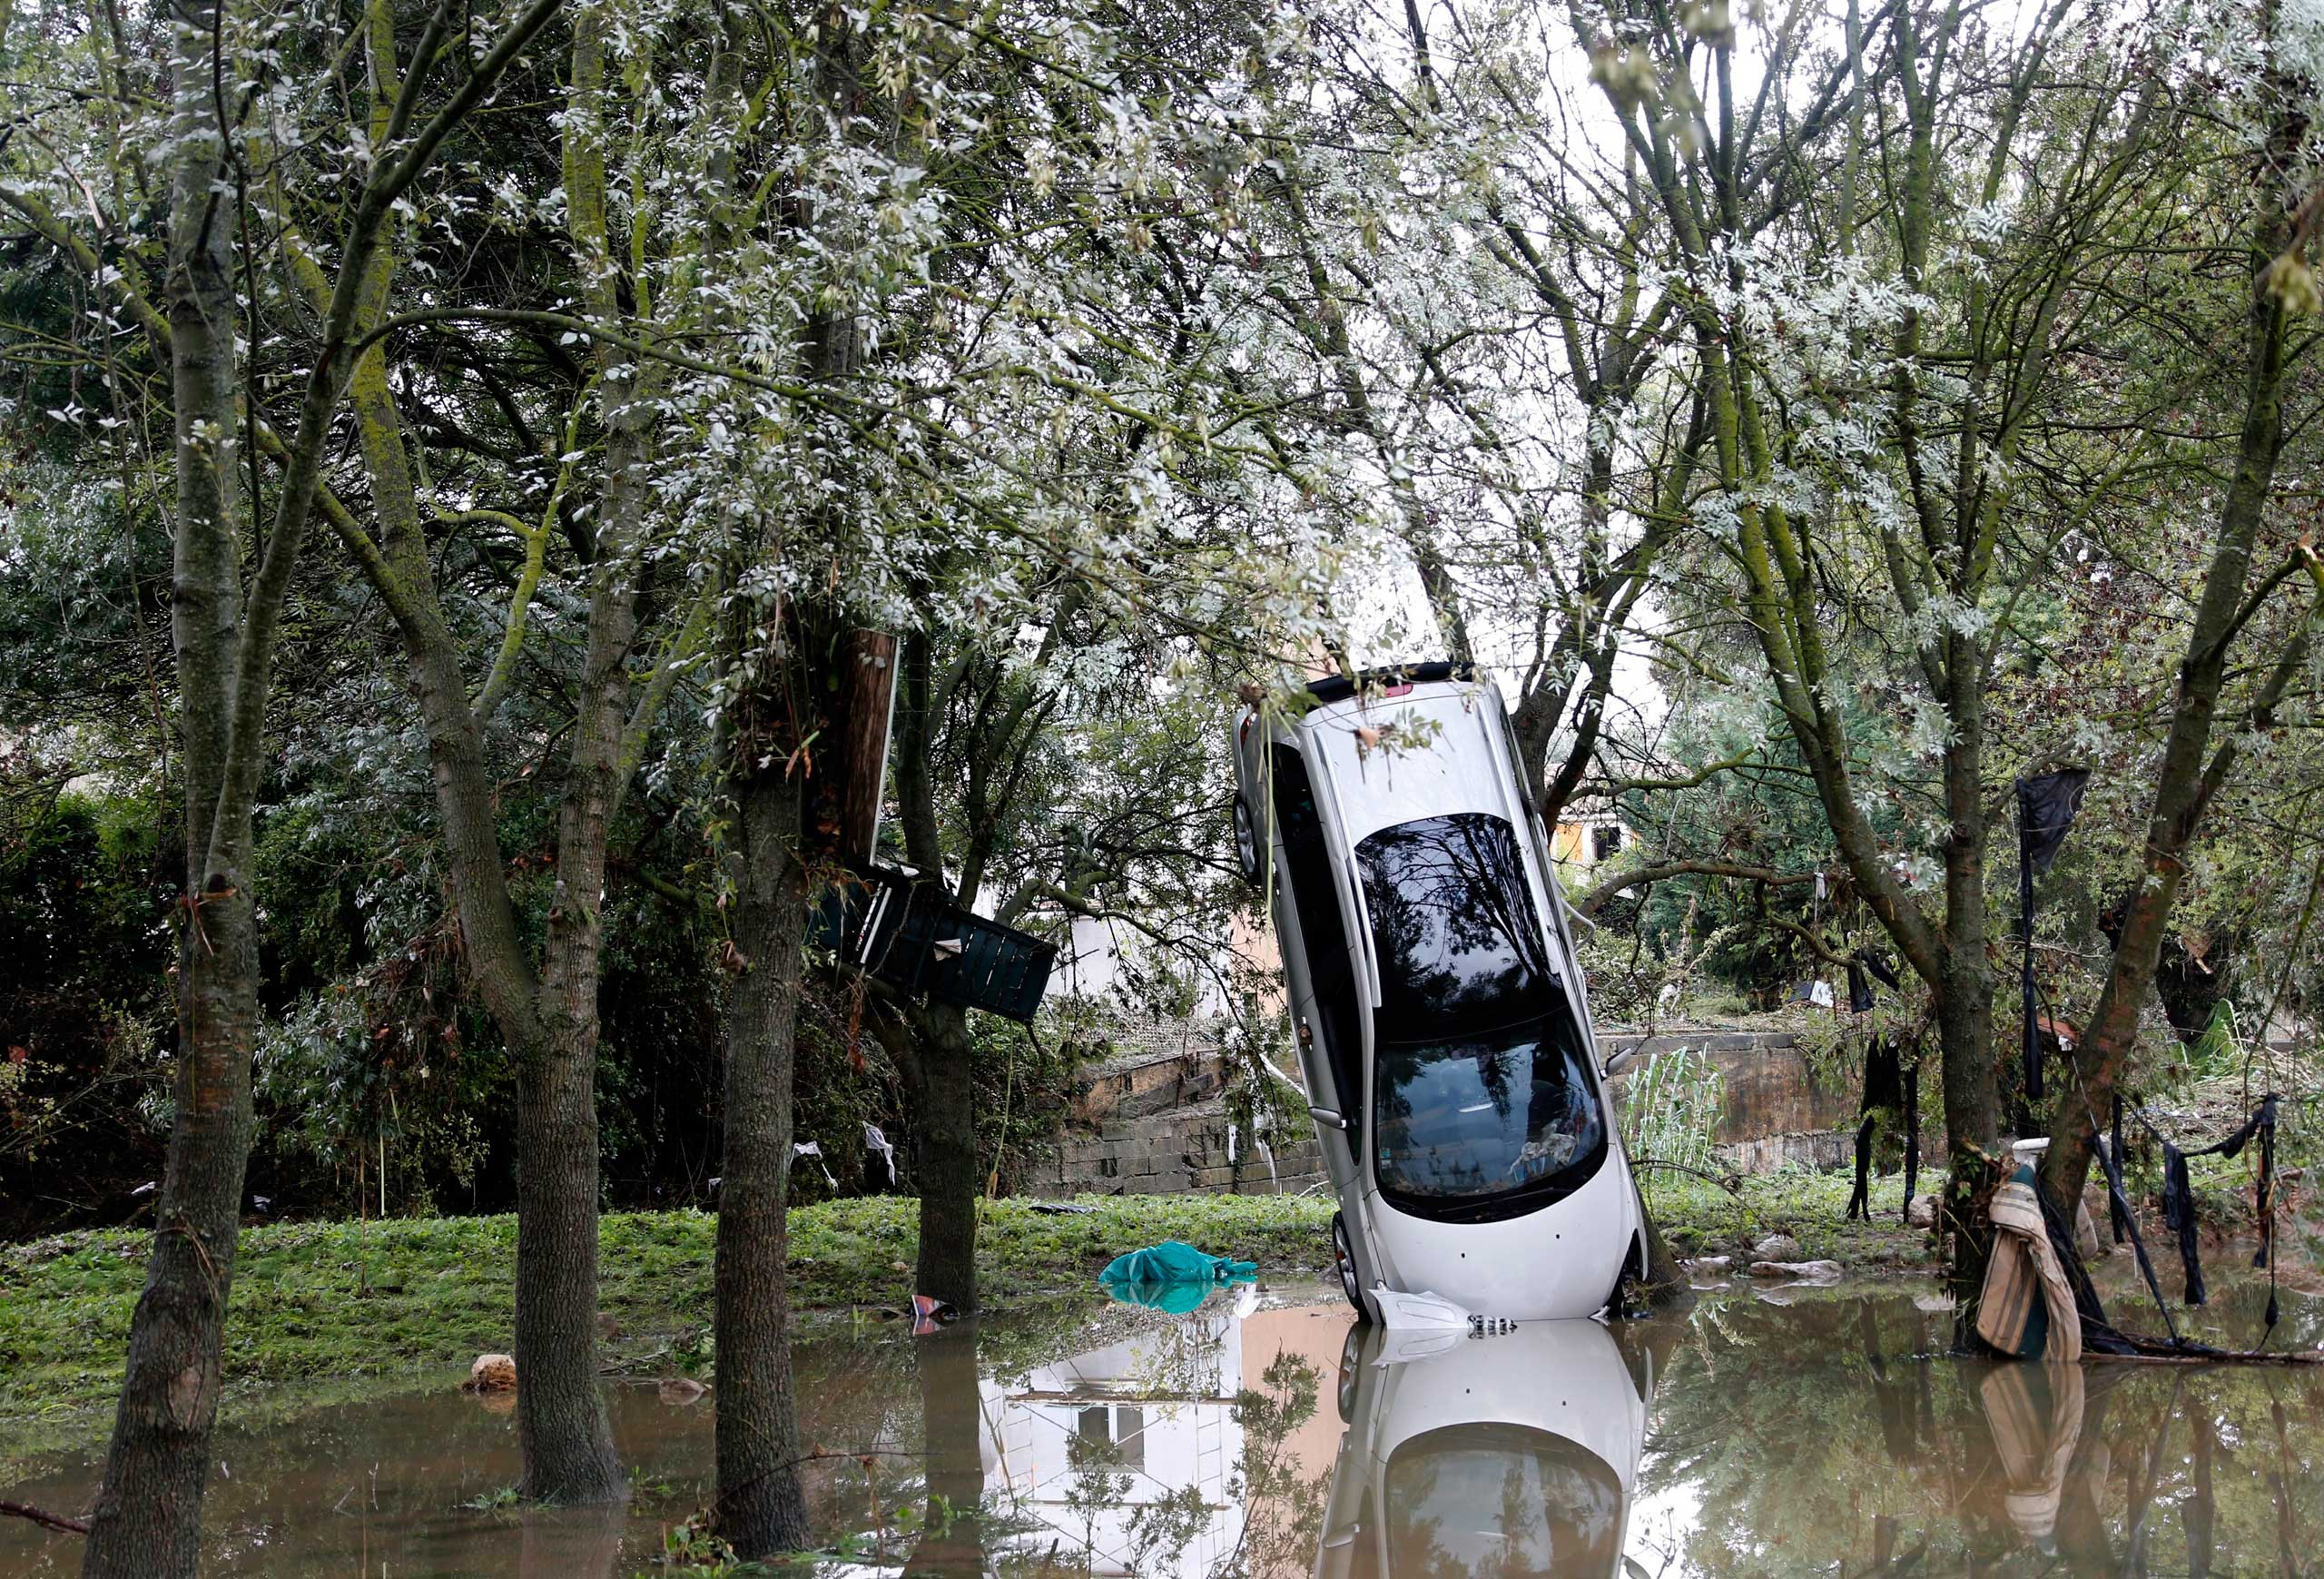 Oct. 7, 2014. A destroyed car hangs from a tree after heavy floods in Grabels, near Montpellier, Southern France. Parts of Montpellier lay under water after the Lez river, which flows through the city, burst its banks.